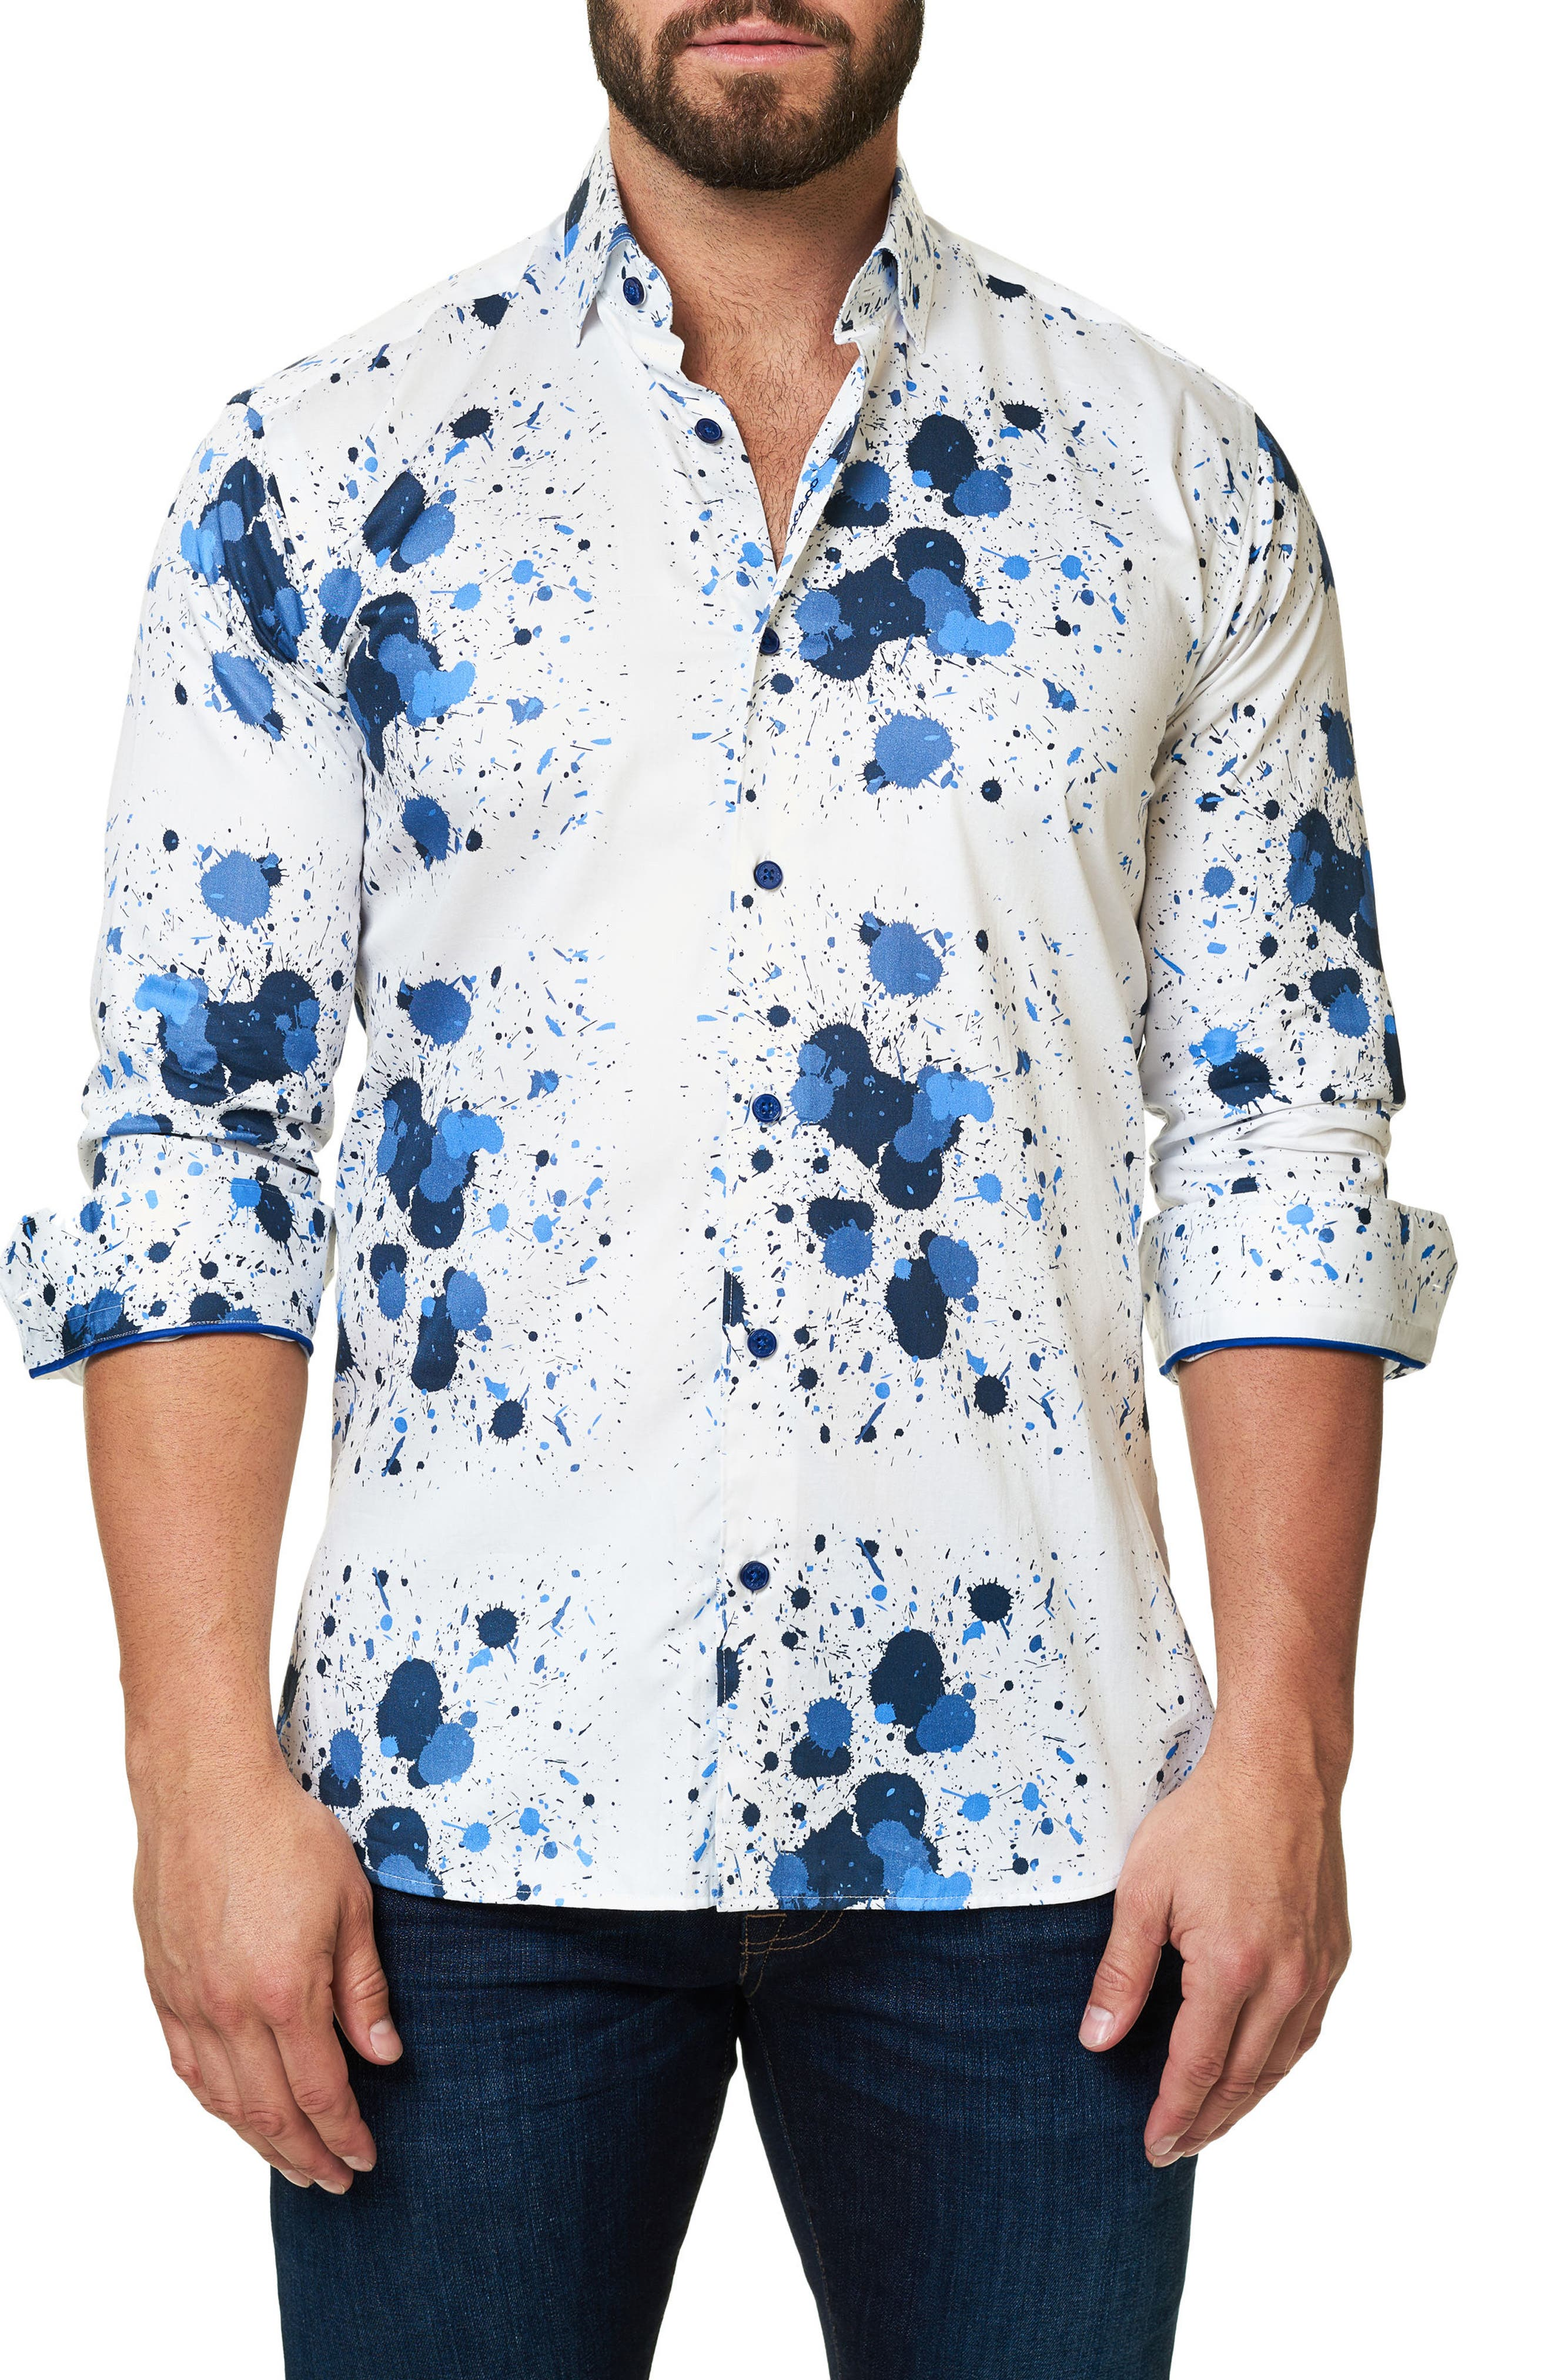 Trim Fit Splash Print Sport Shirt,                             Main thumbnail 1, color,                             White